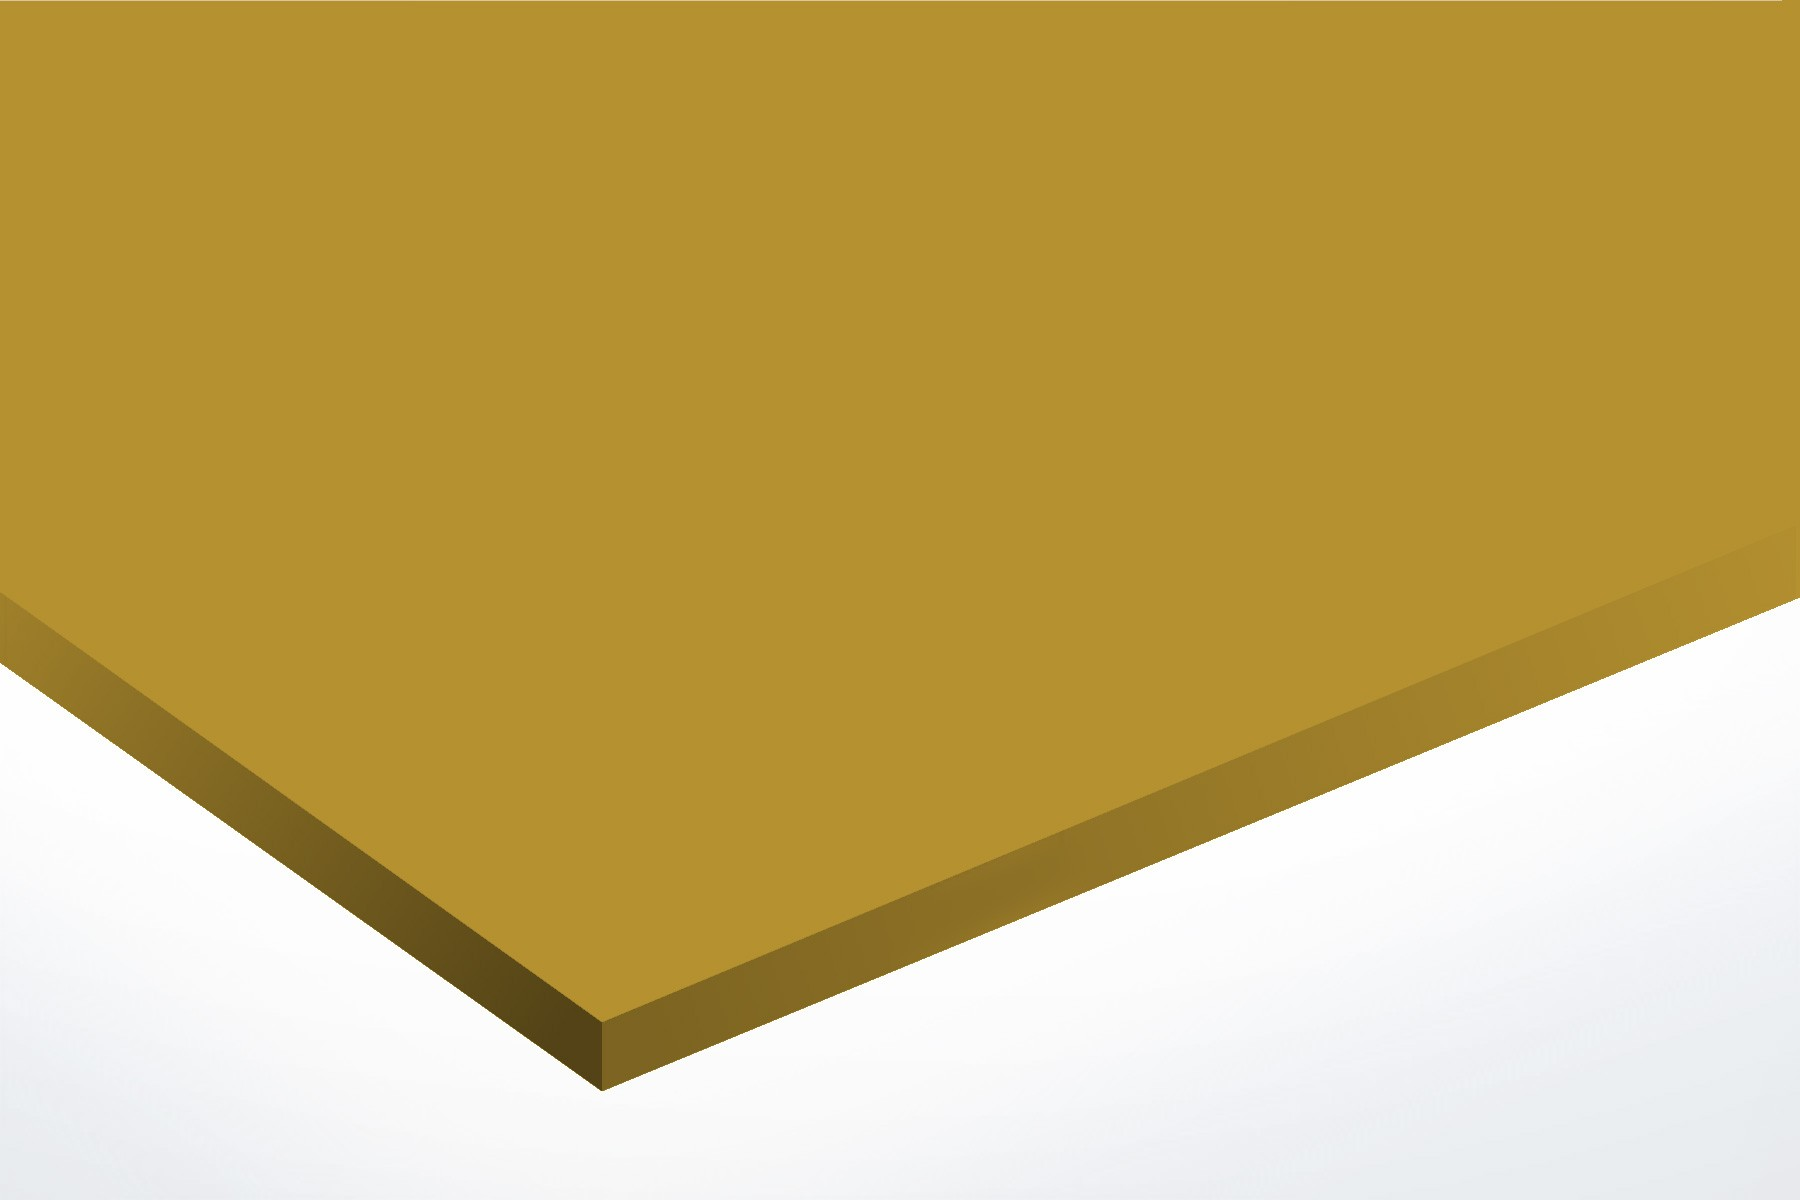 Anodised Aluminium Gold, Matte, 2mm x 1000mm x 500mm